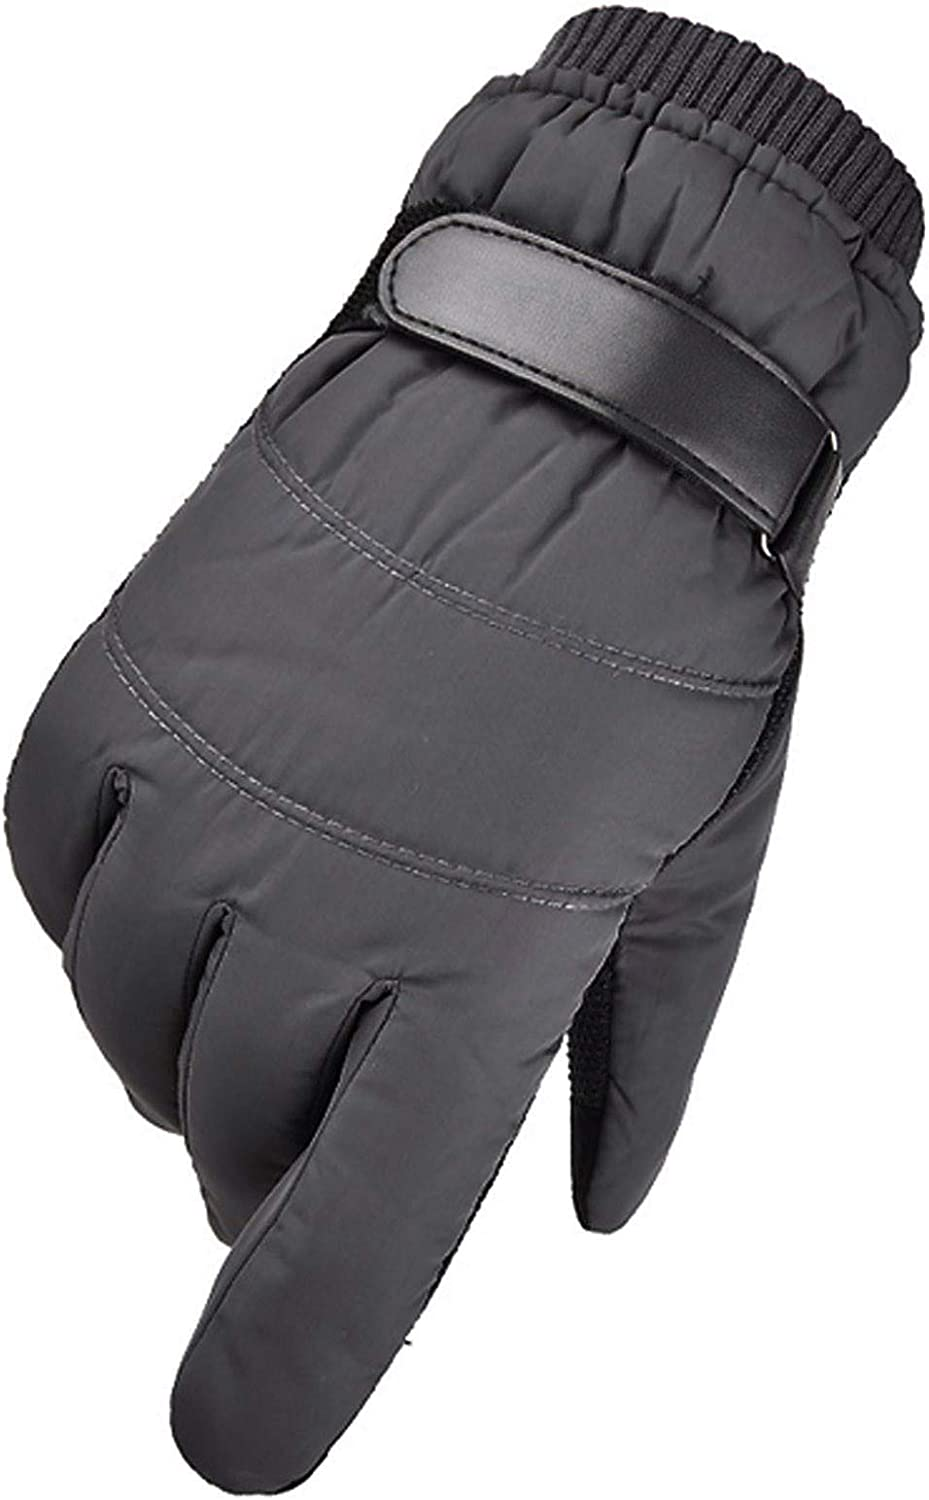 Winter Outdoor Wind Proof Glove Ski Riding Warm Mountain Climbing Outdoor Mitten Fashion/Prom/Warm/Bicycle Gloves